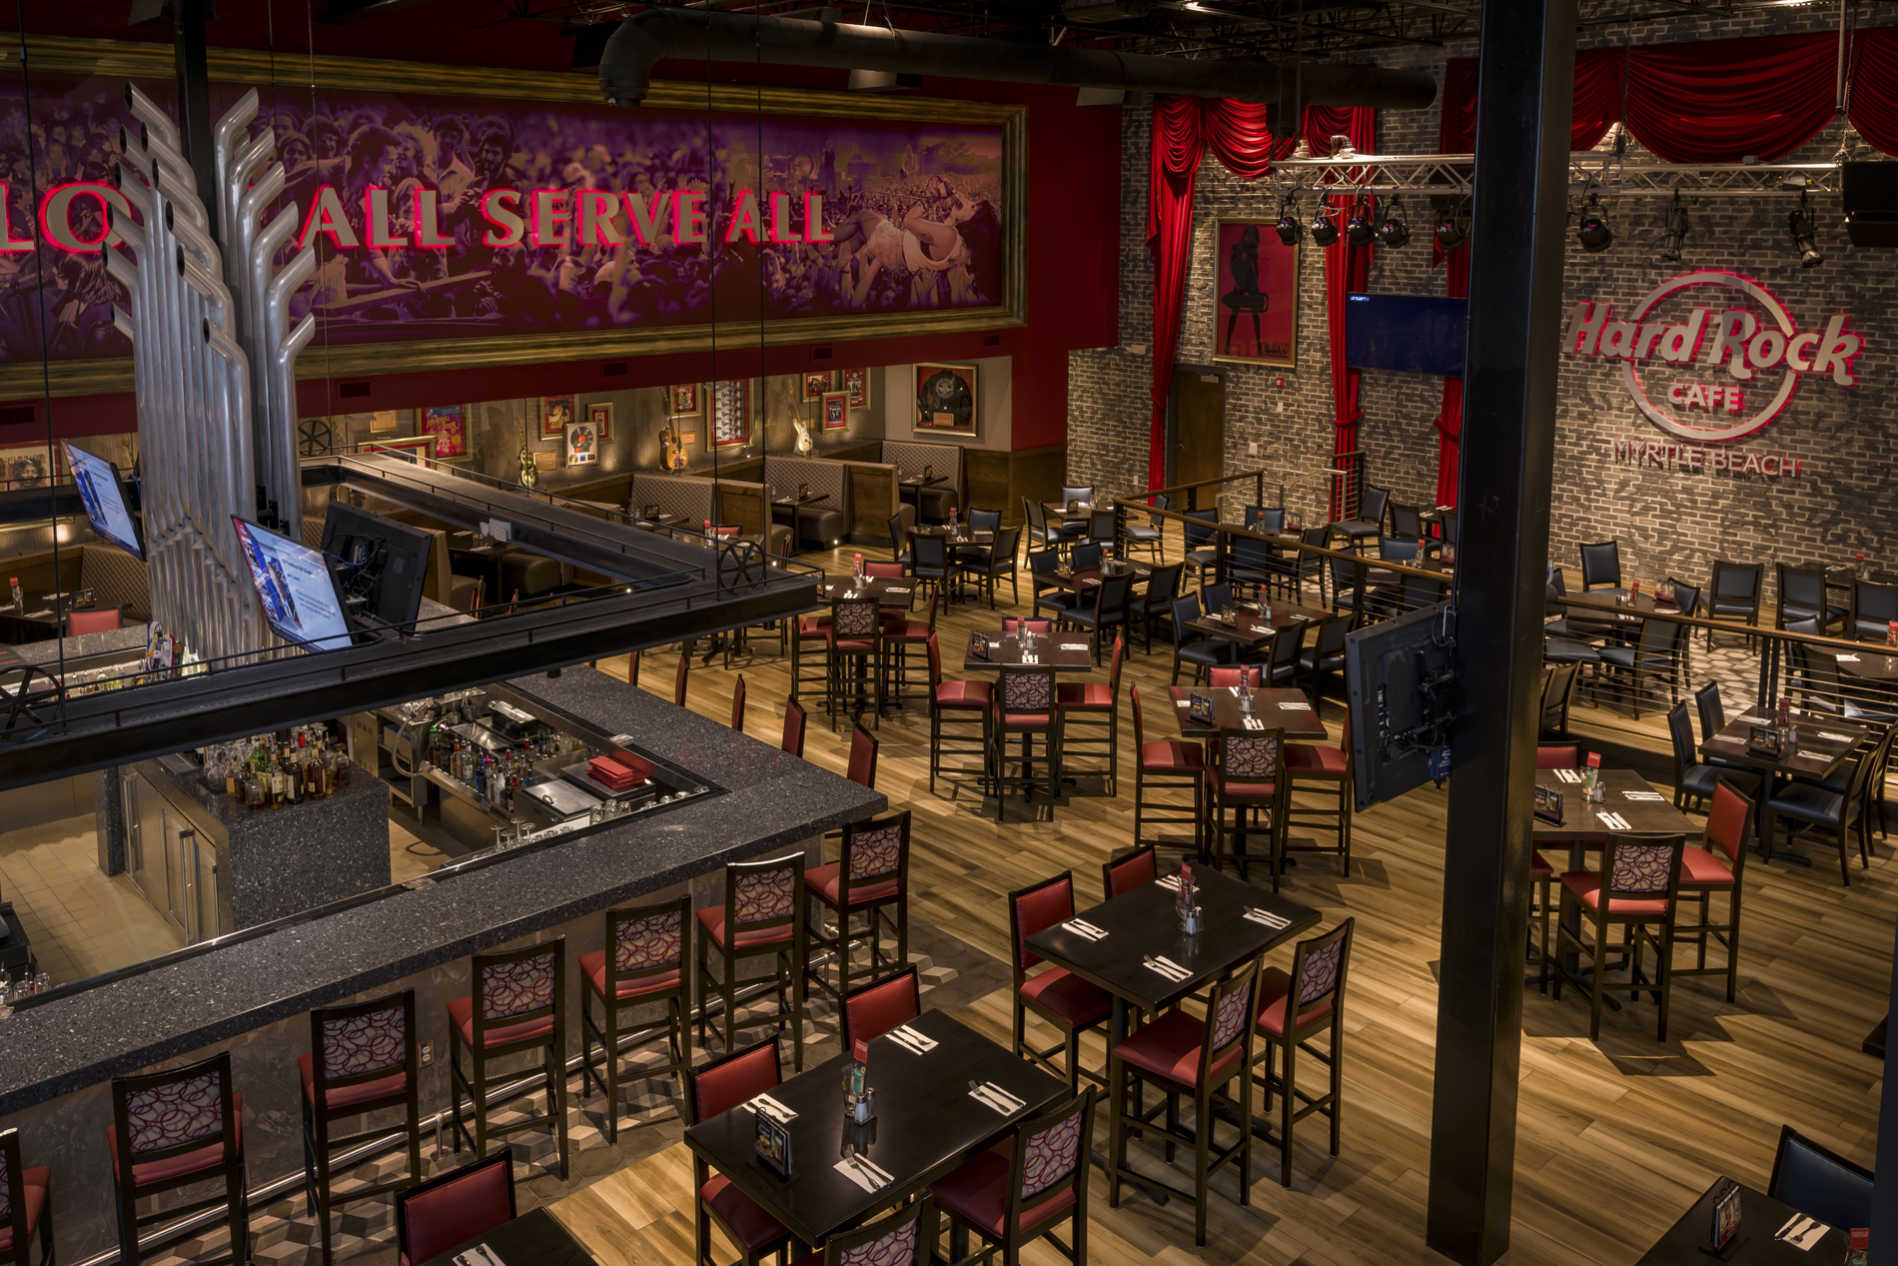 Hard Rock Cafe - Myrtle Beach, SC - Restaurant Design By DP3 Architects